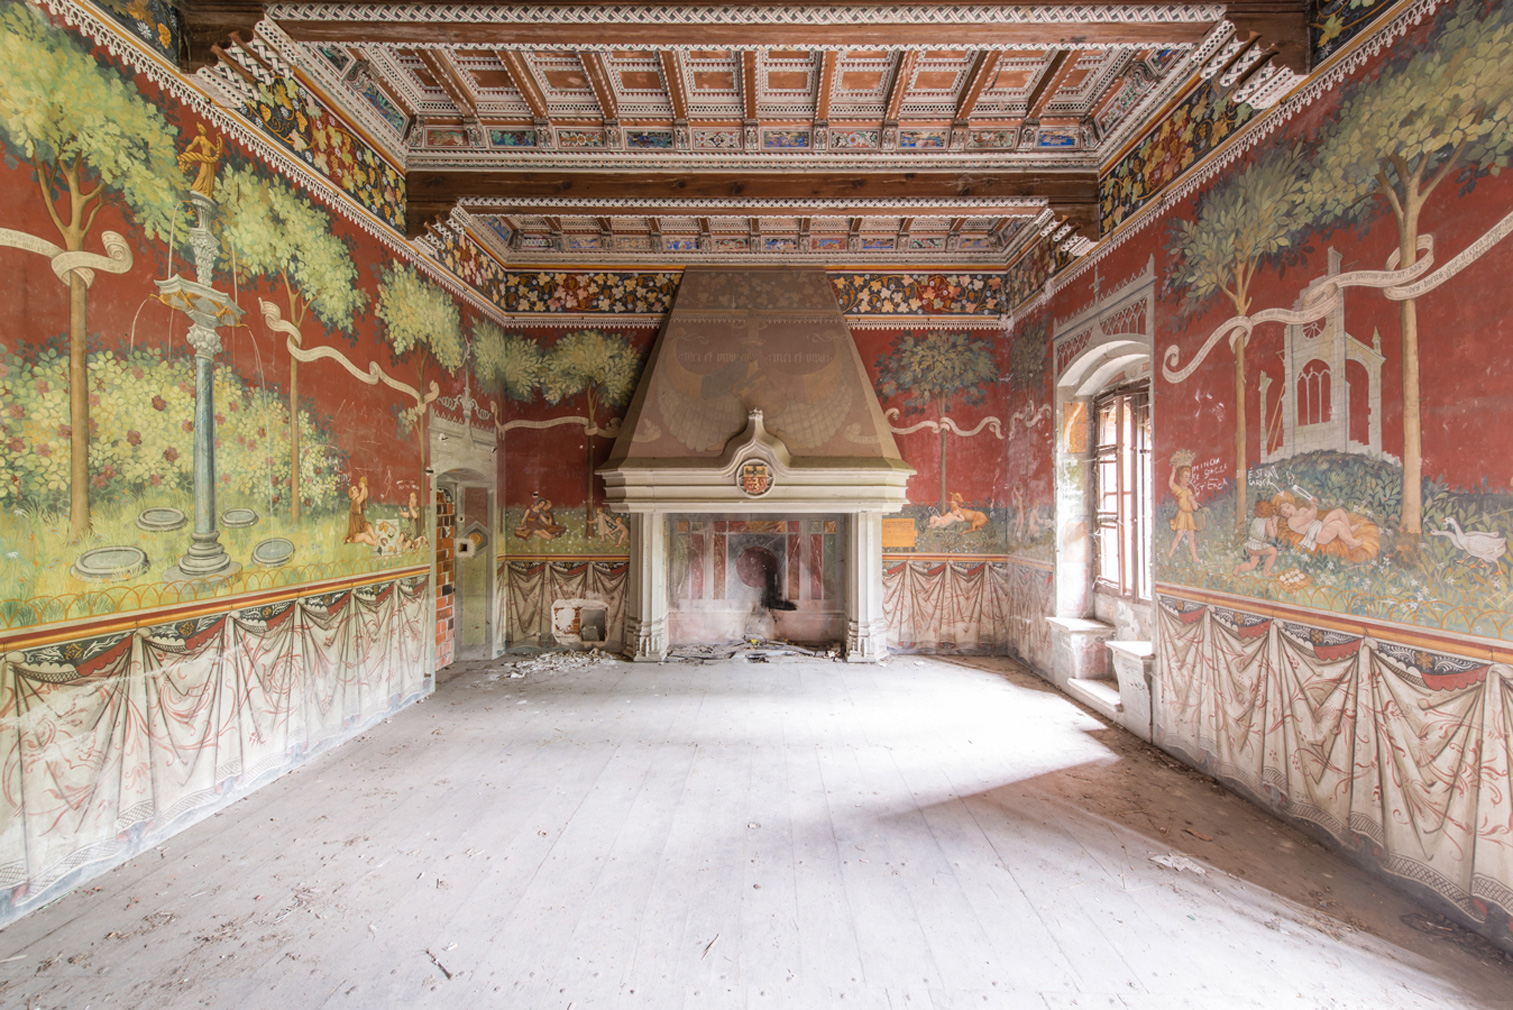 Europe's ghostly frescos star in Romain Veillon's 'Le Musee Imaginaire' series